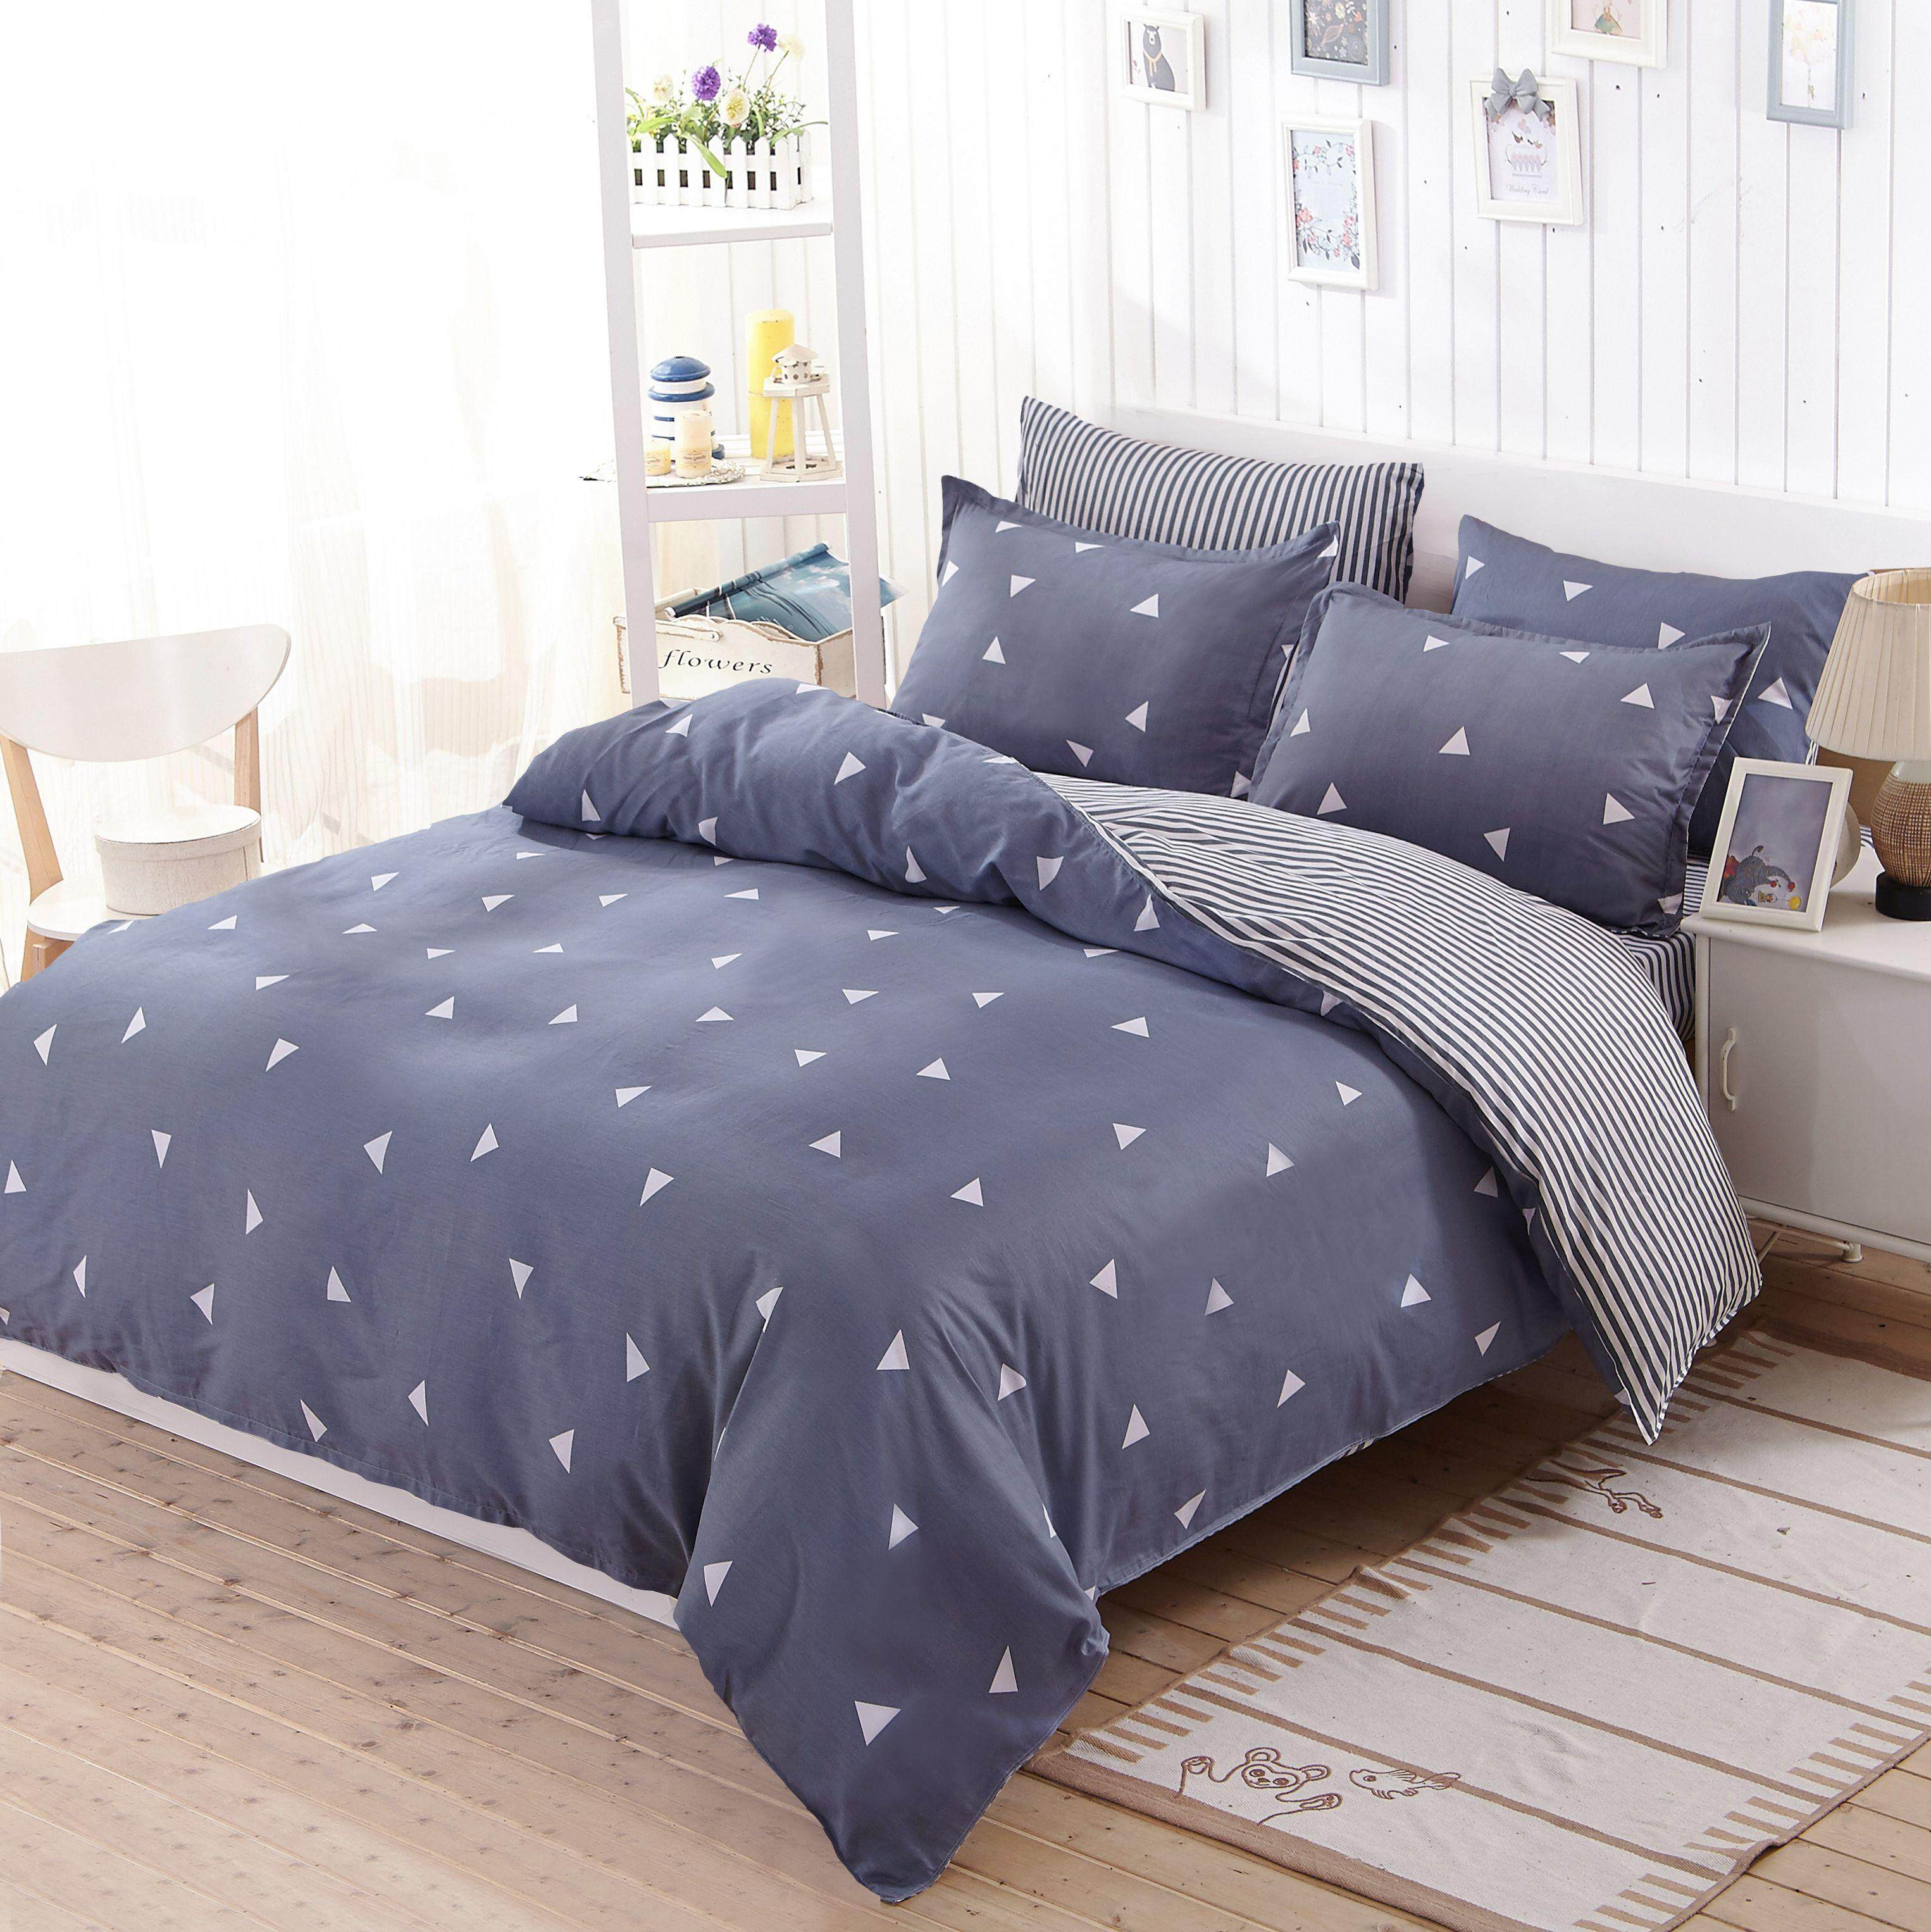 Bedding New Print Good Quality Luxury Sheet Pillowcase And Duvet Cover Sets Bedlinen Twin Double Queen King Size Bedding Sets